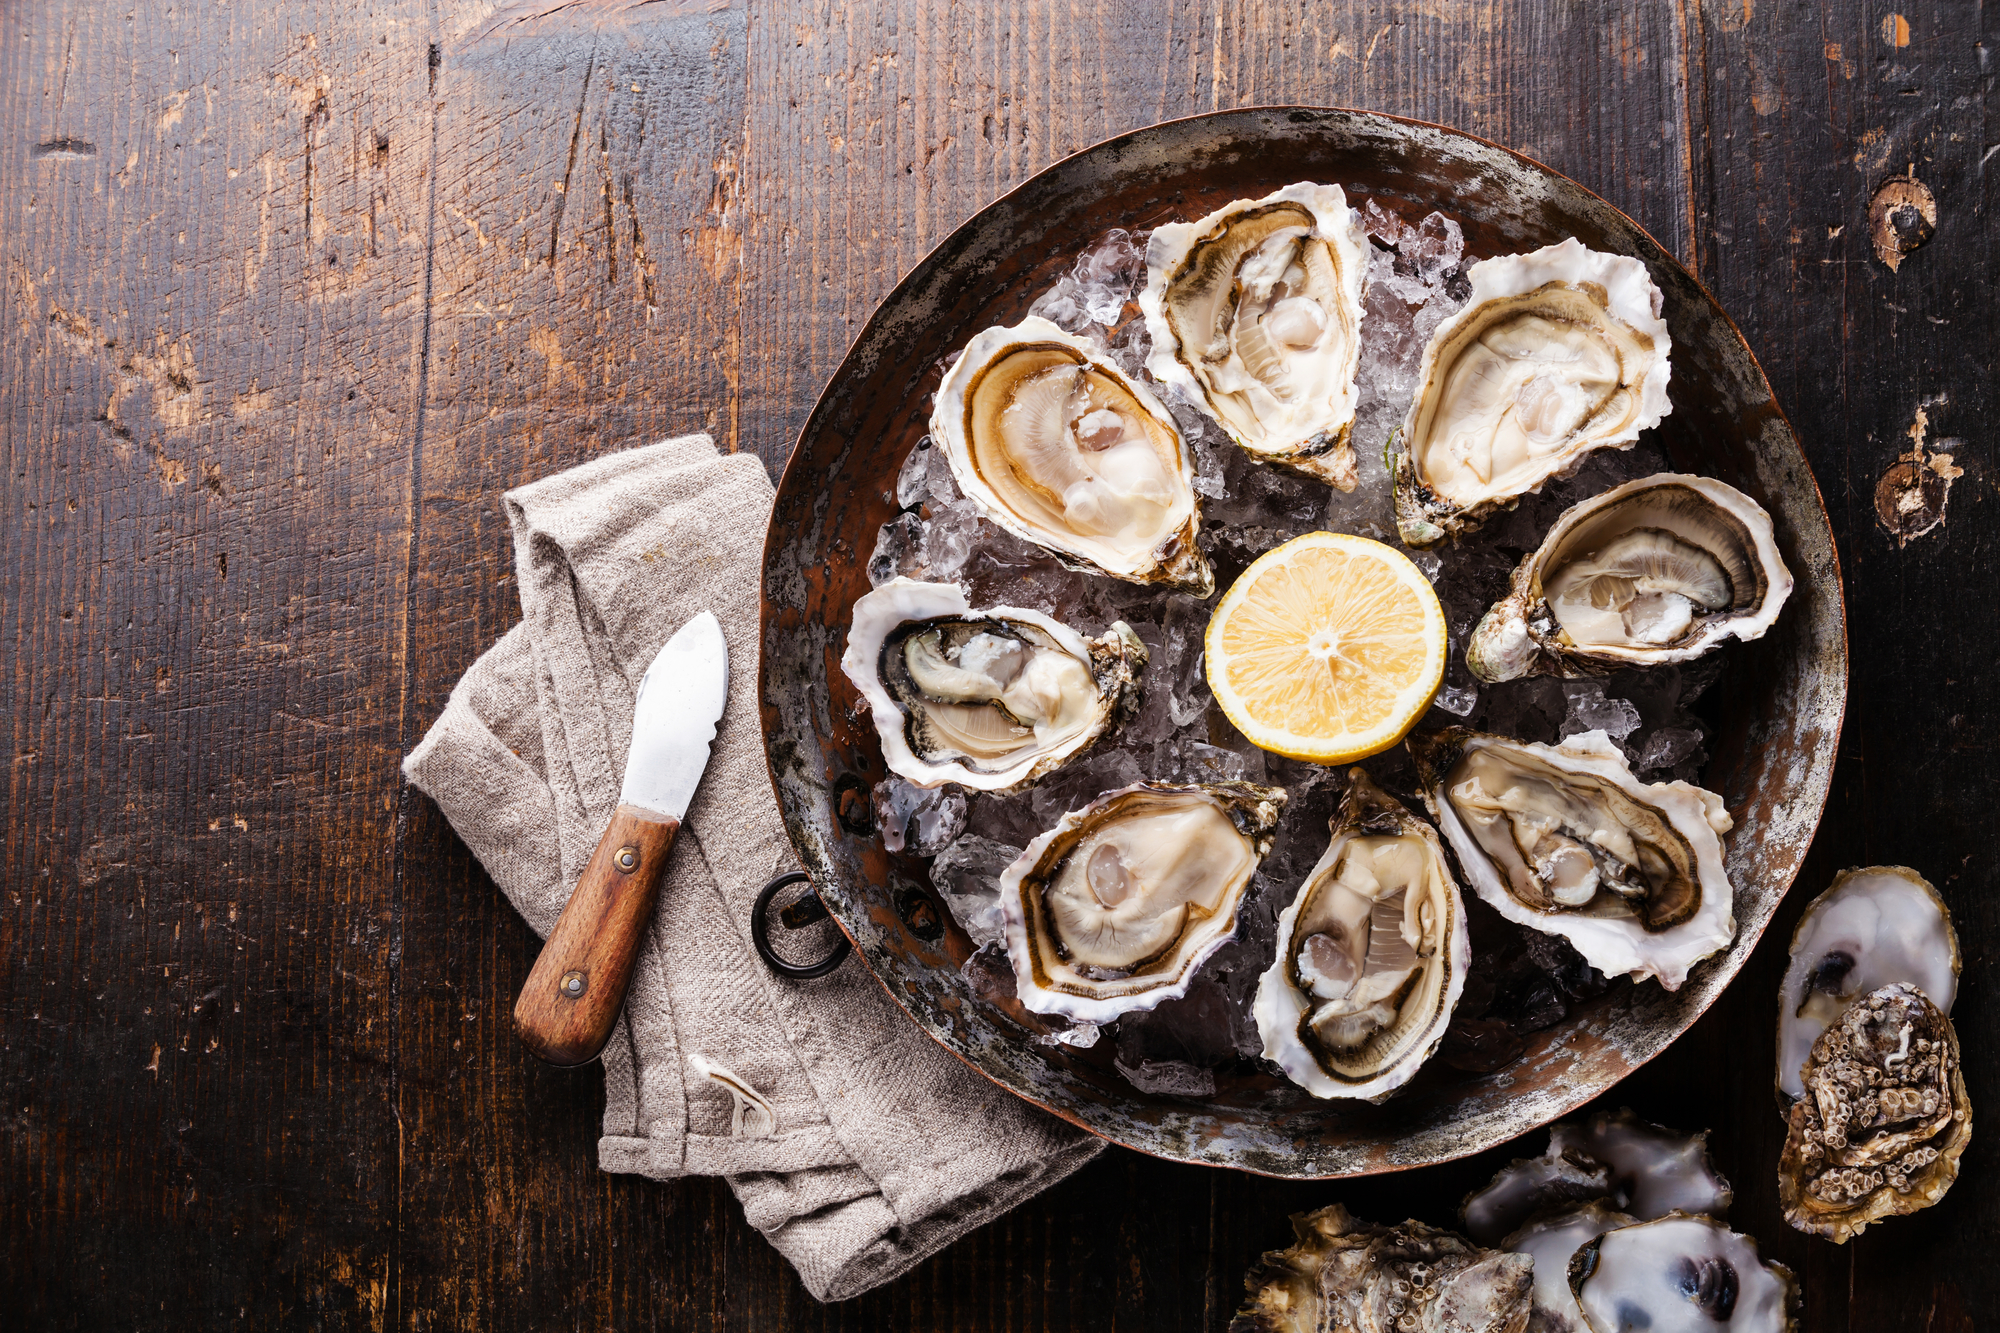 Fresh oysters on ice with lemon on a wooden table top